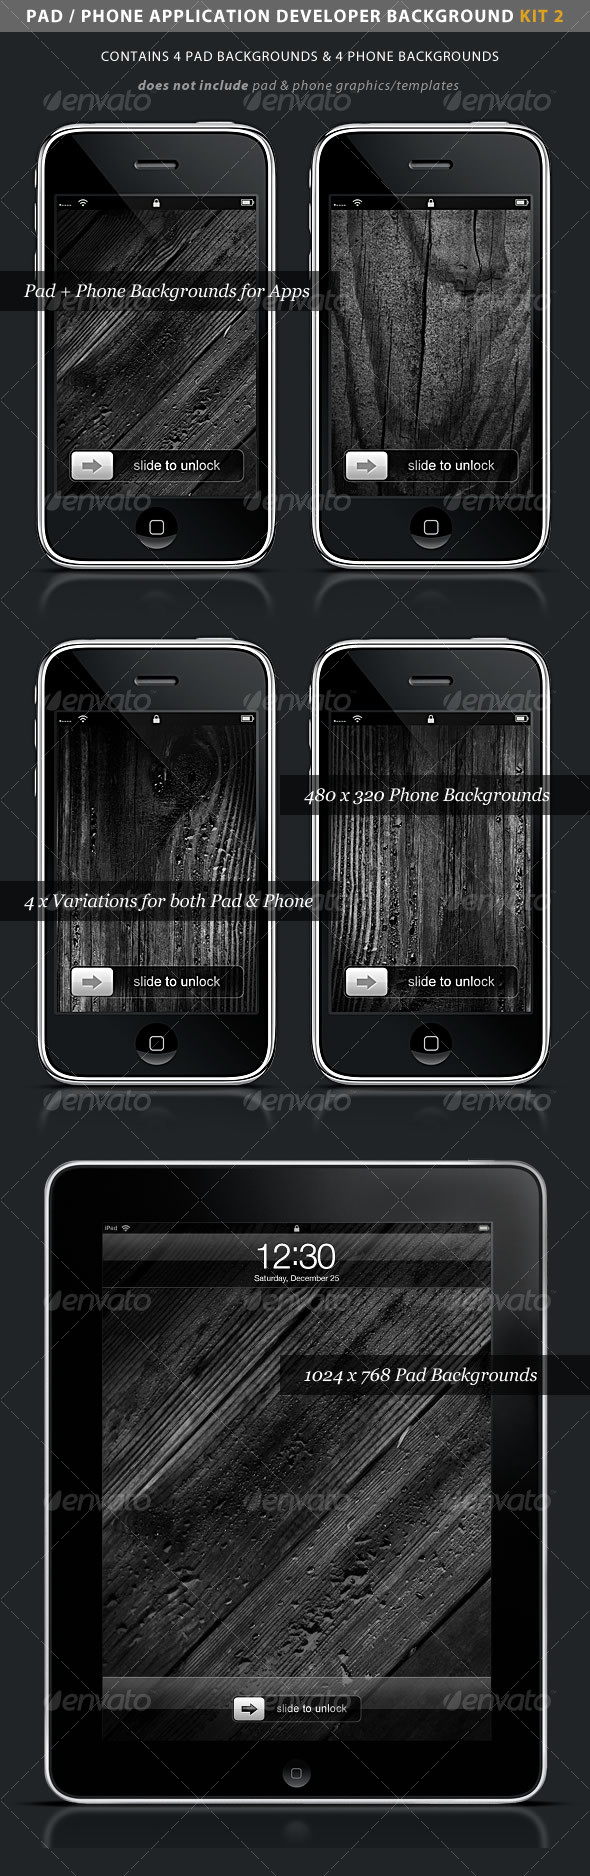 iPad / iPhone App Developer Kit 2 > Wood - Backgrounds Graphics